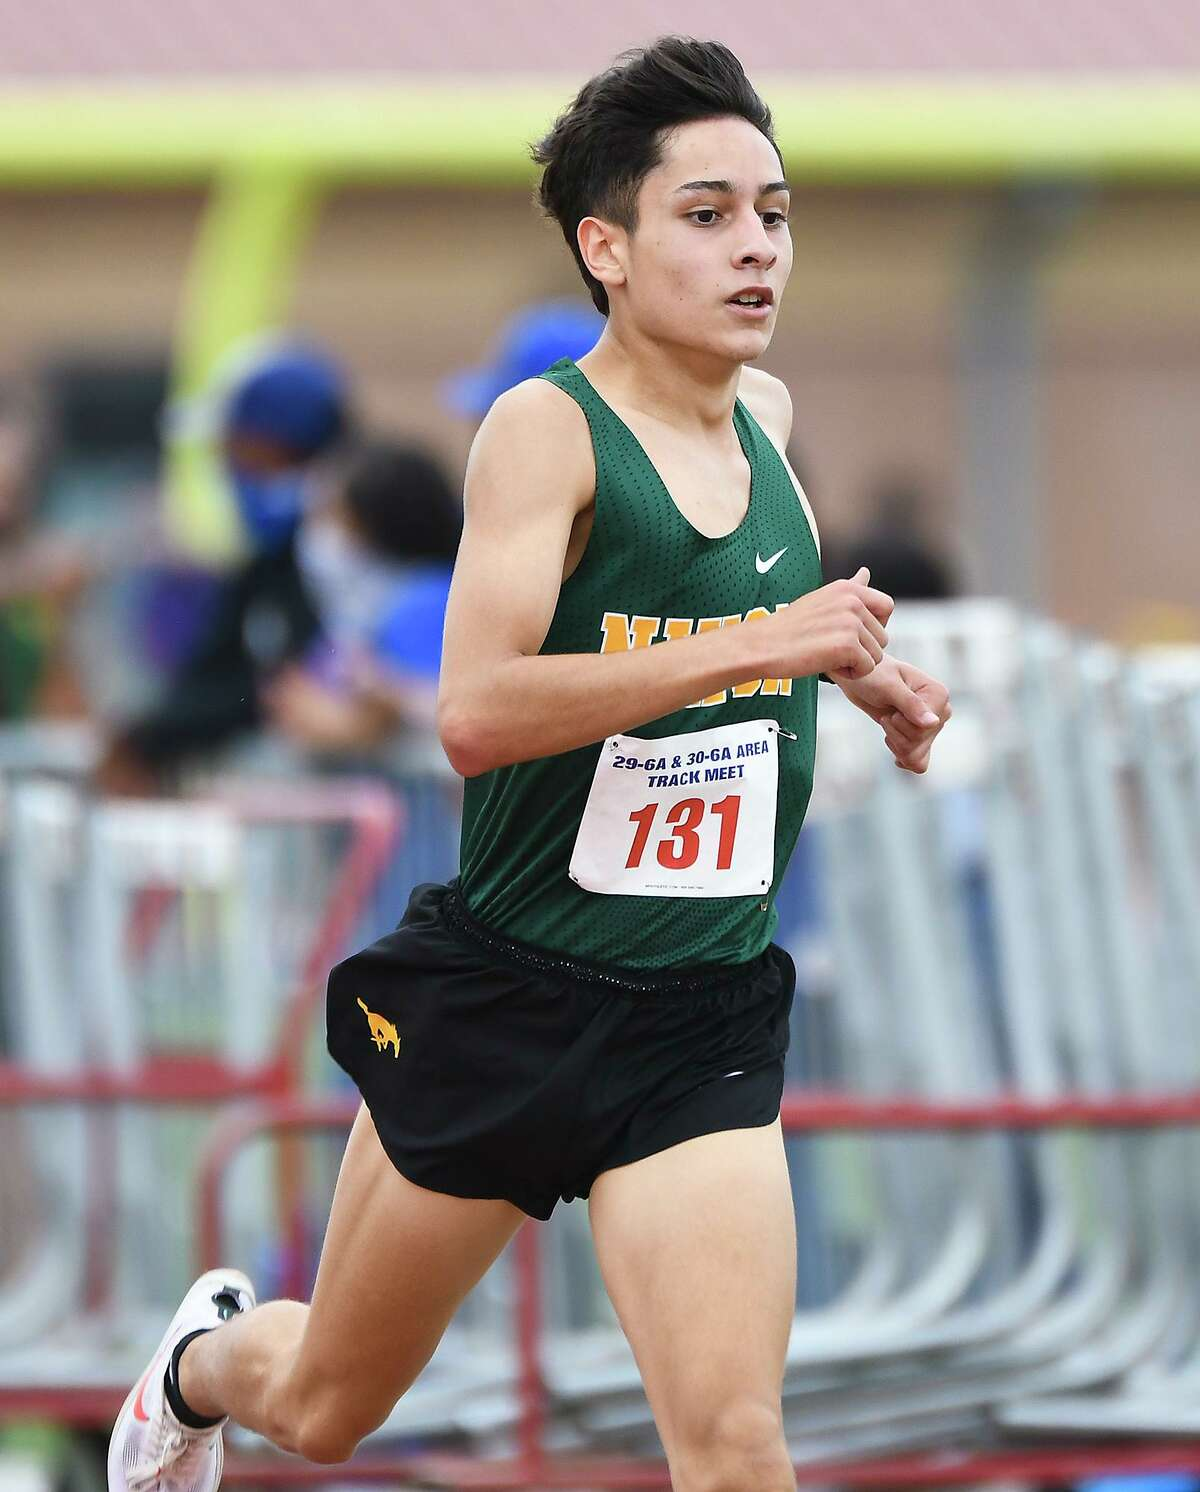 Margarito Benavides and Nixon are both aiming for a third straight title to open the season as they compete Saturday in the TAMIU Invitational XC Meet.